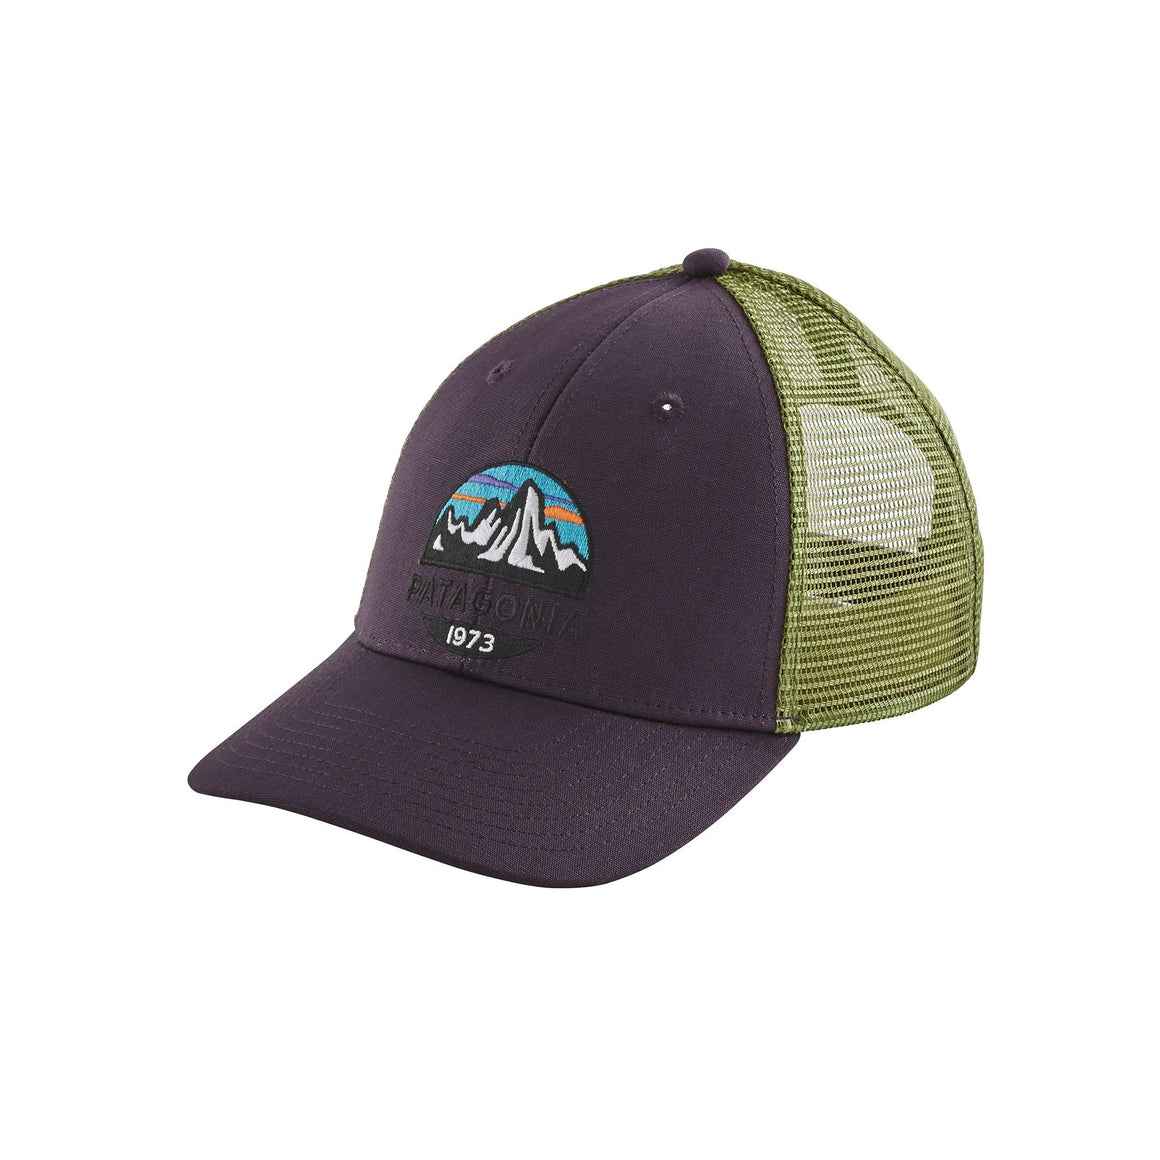 Patagonia Fitz Roy Scope LoPro Trucker Hat - Unisex